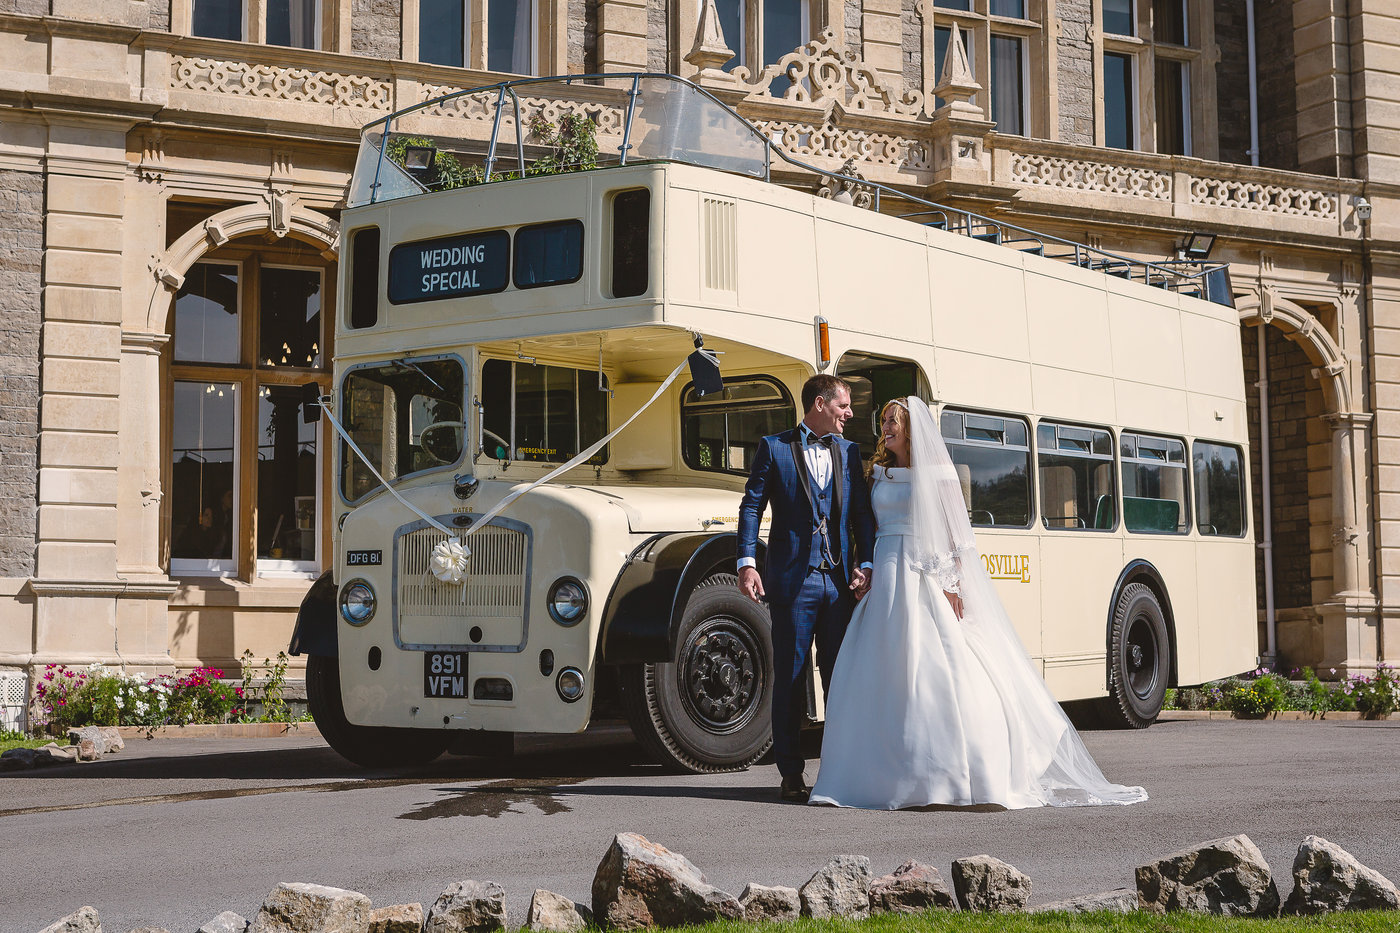 Crosville Vintage launch with superior wedding and event offering